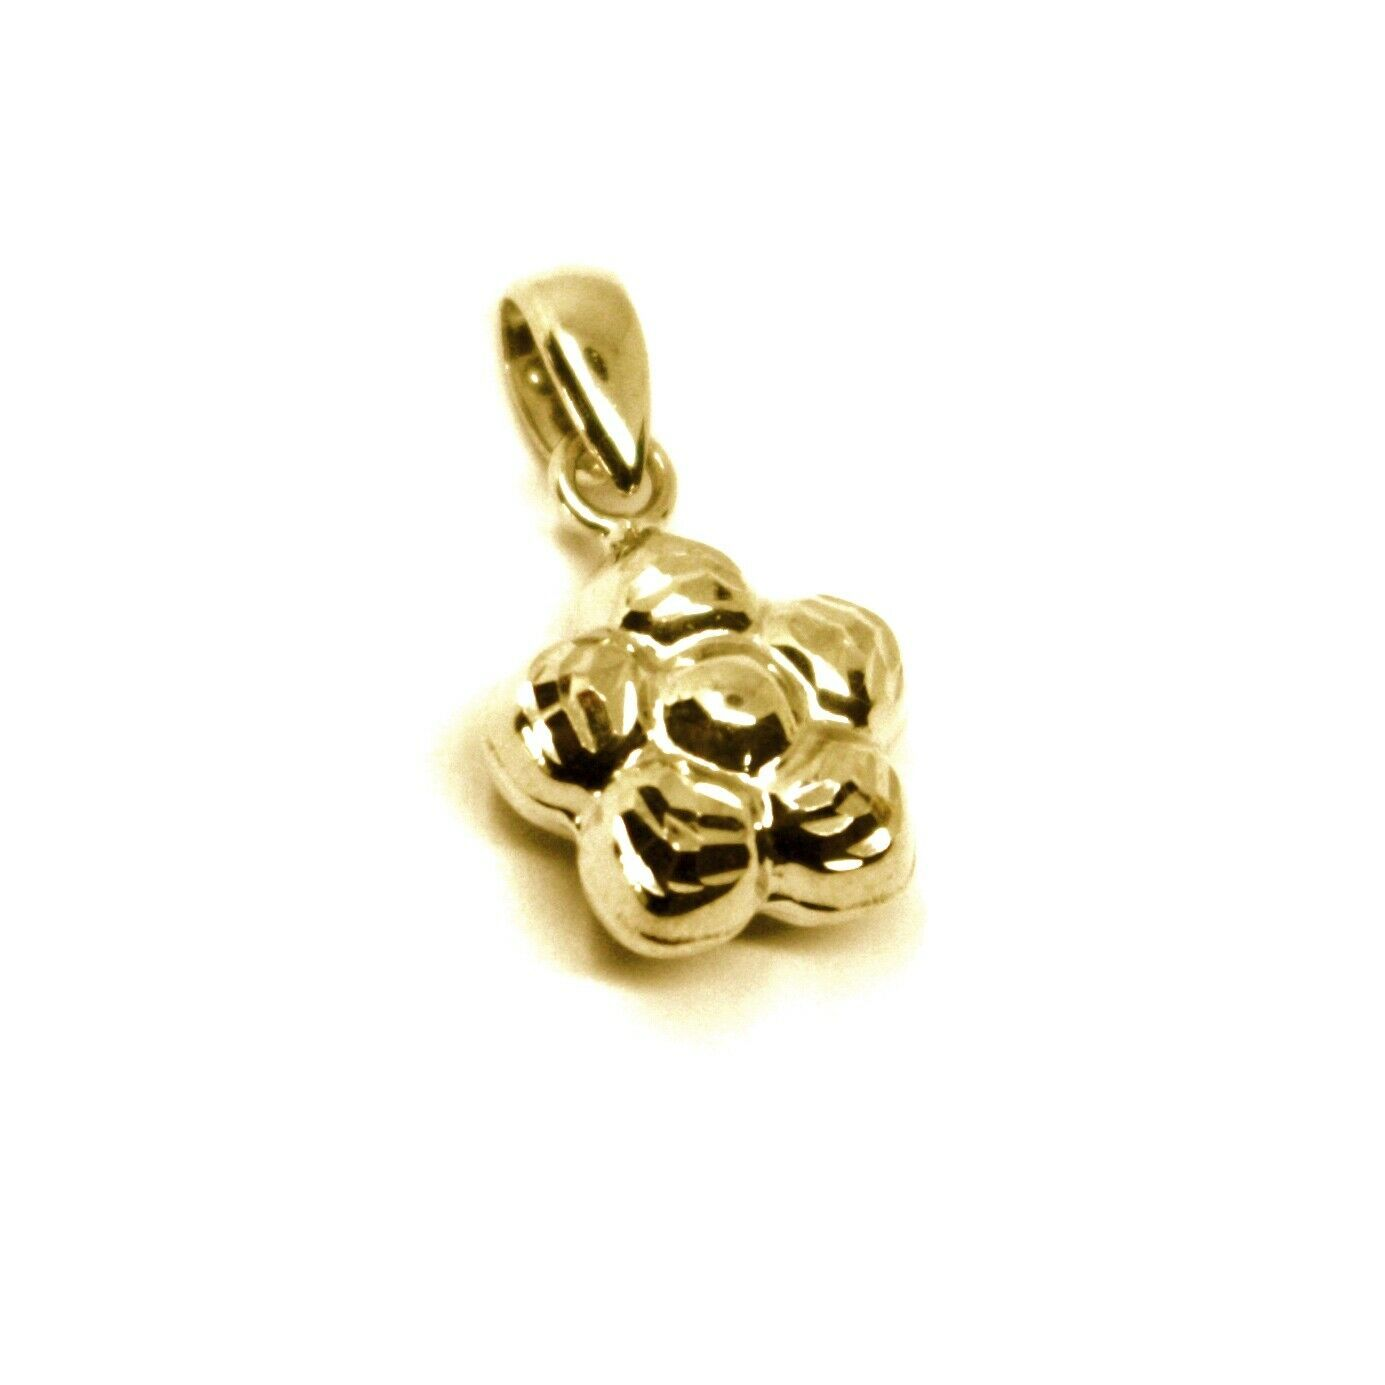 18K YELLOW GOLD MINI ROUNDED FLOWER PENDANT 10mm DIAM. TWO FACES SMOOTH & WORKED